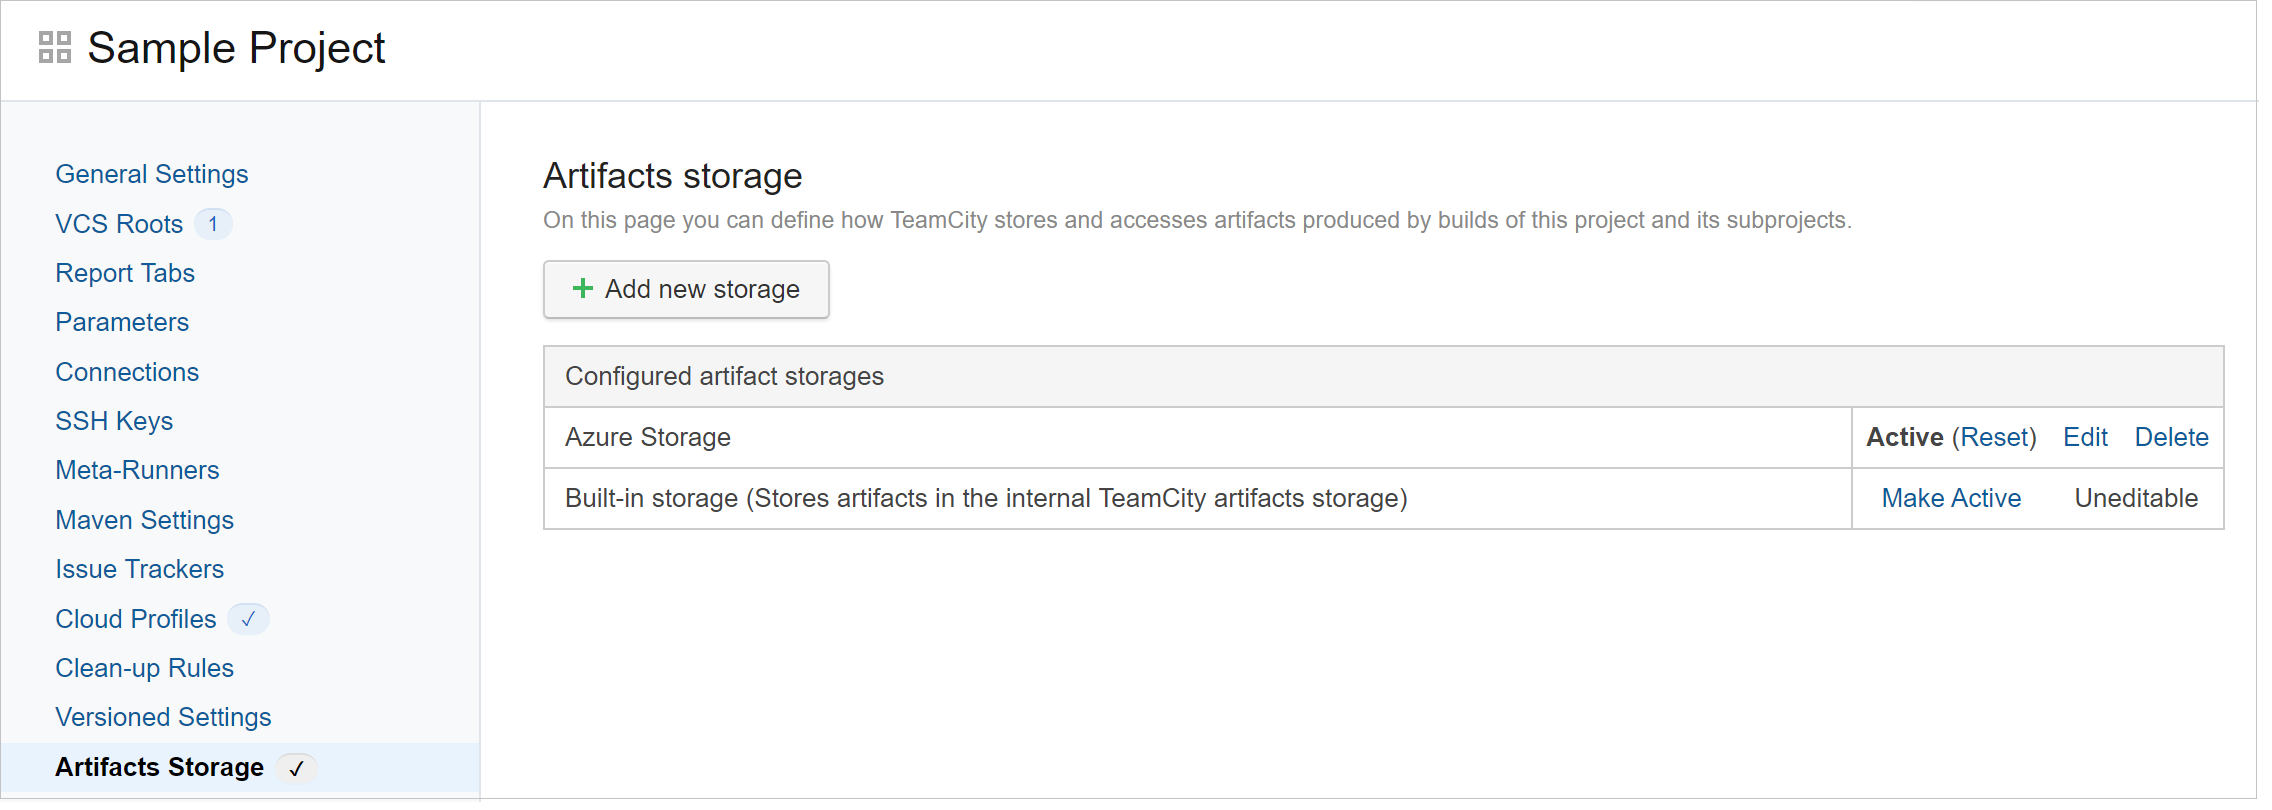 teamcity-artifact-storage-active